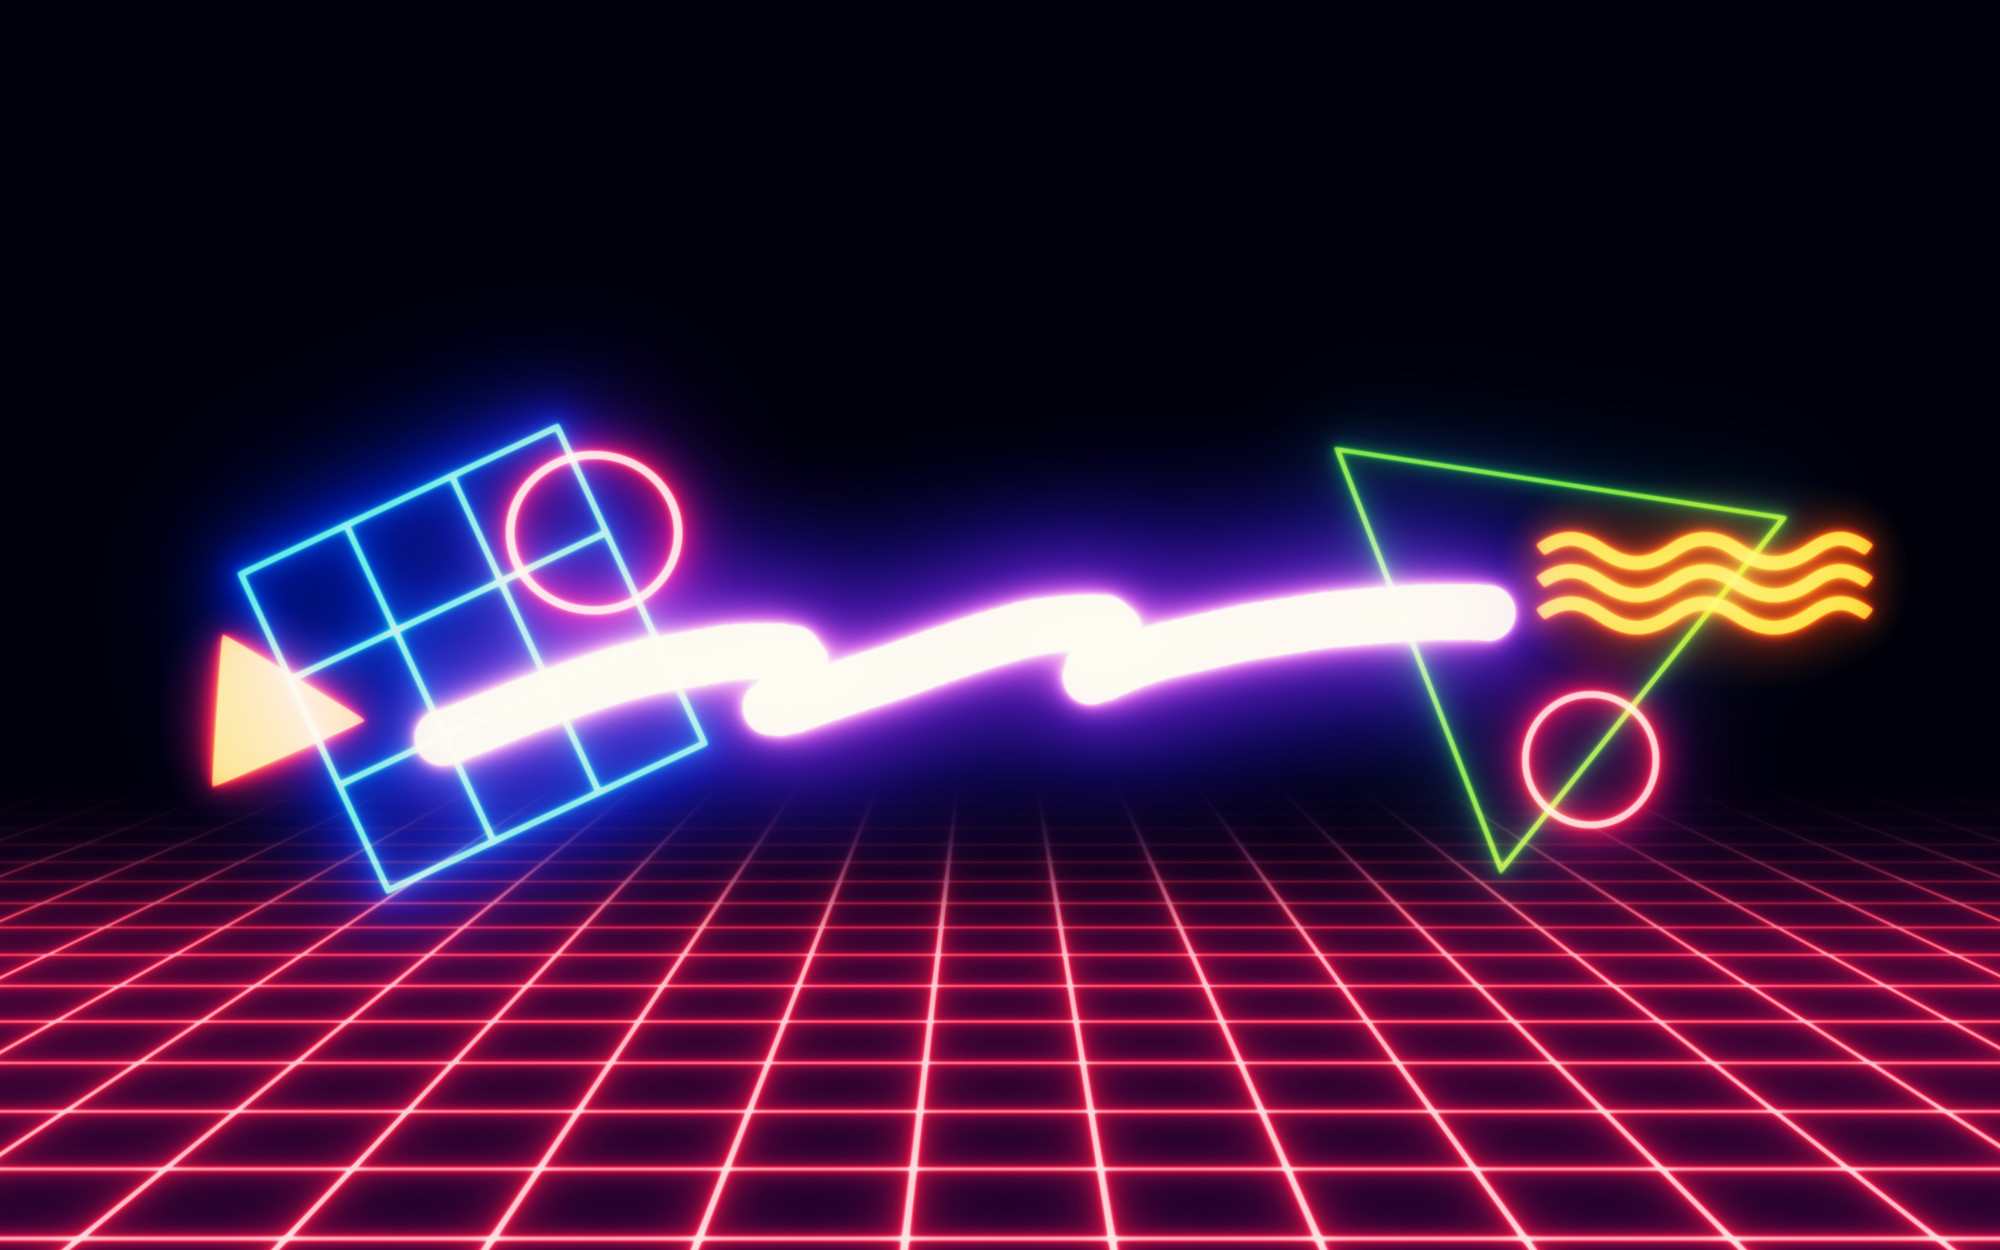 2000x1250 '80s Neon Shapes/Wallpapers on Behance